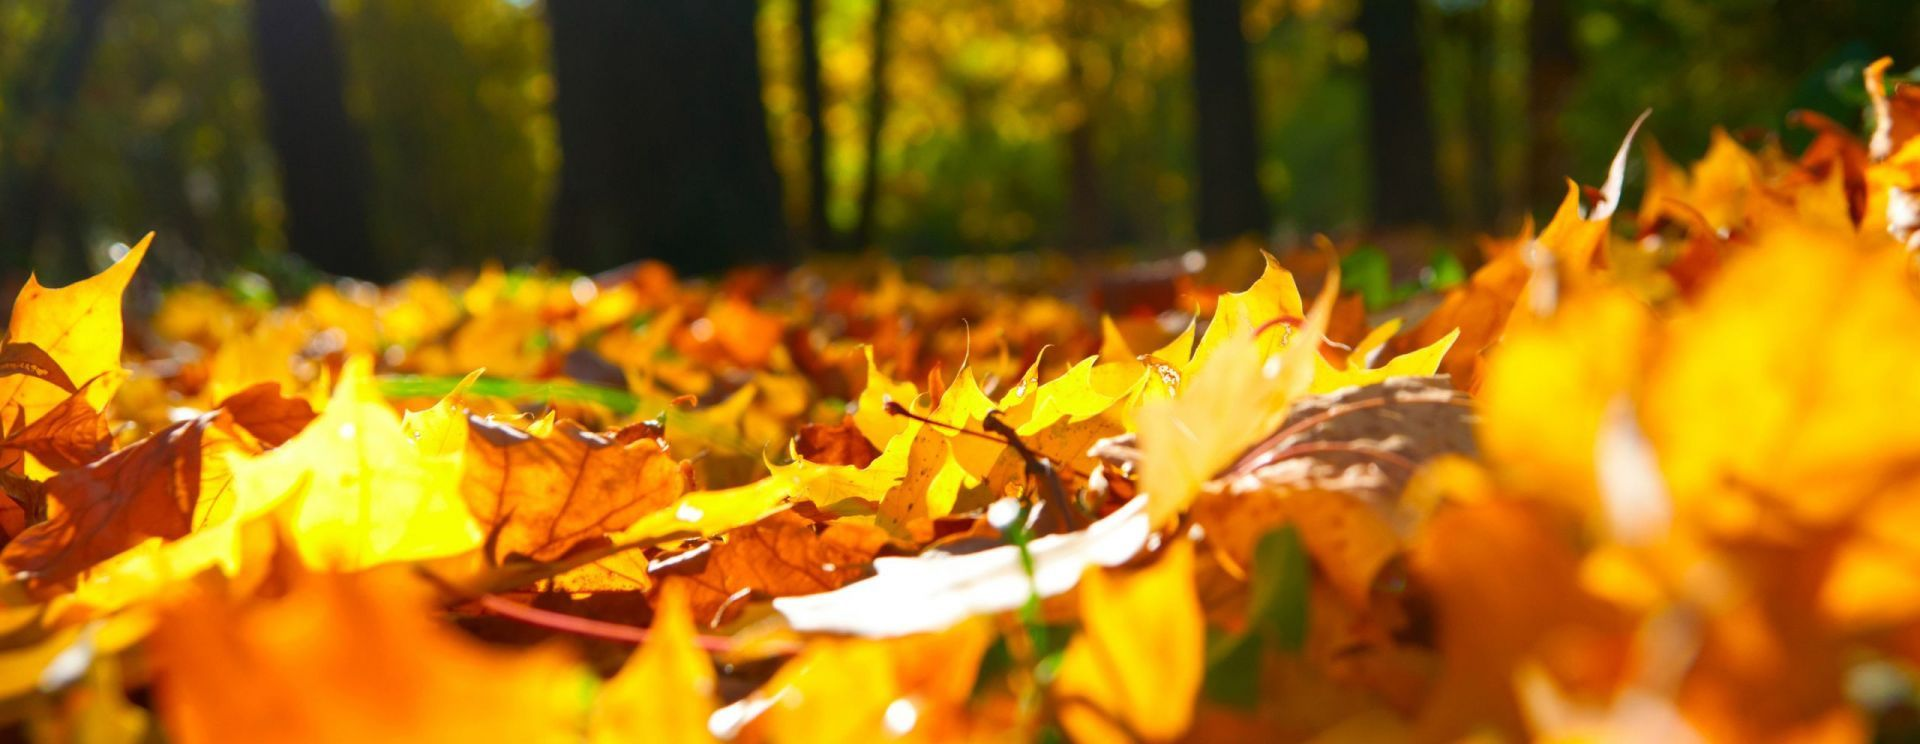 Windows 10 Wallpapers Leaf Compost Autumn Leaves Fall Background